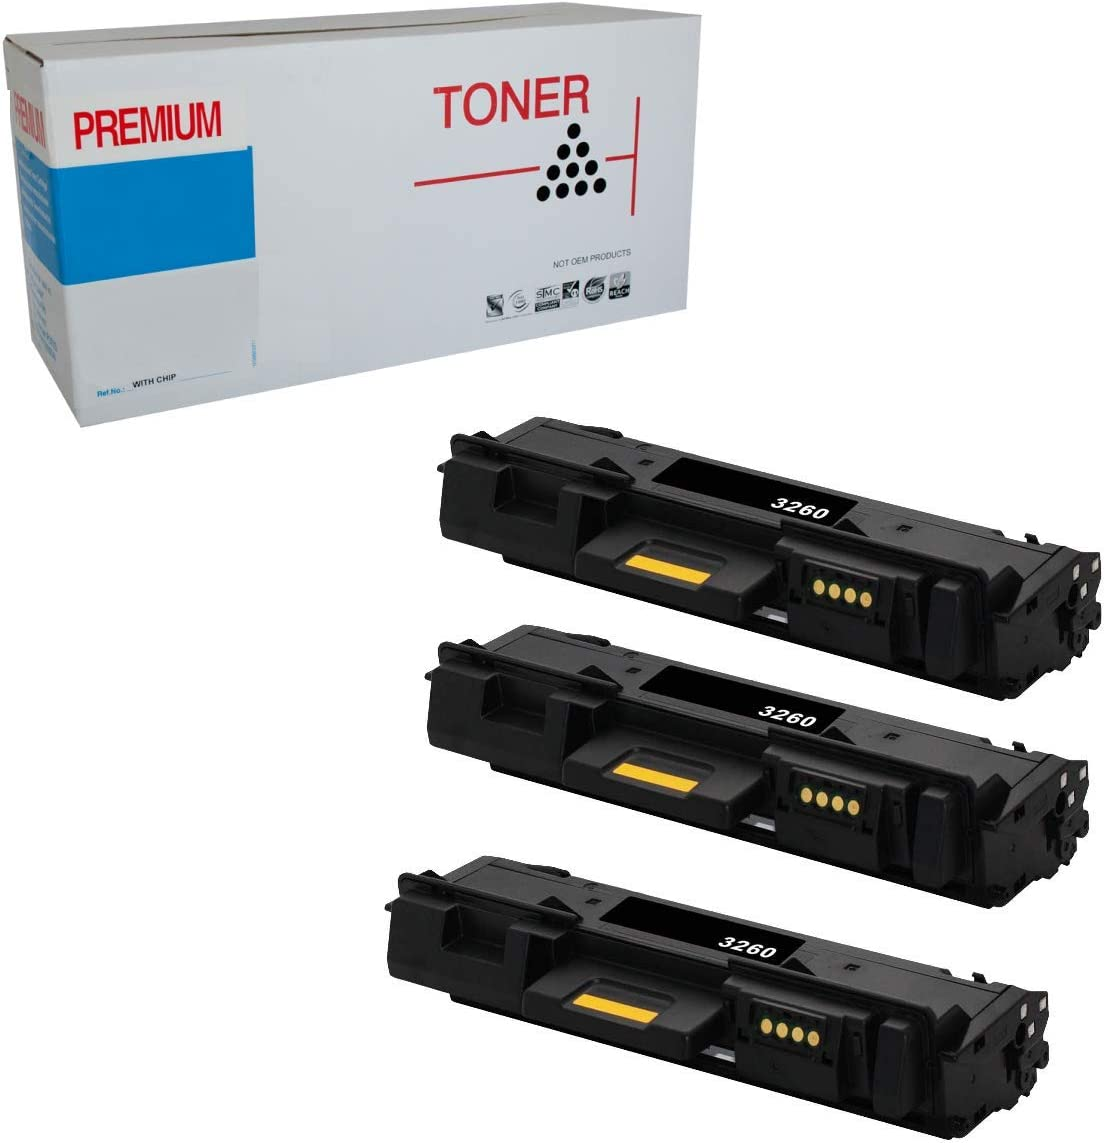 Office Bee Compatible 3 Pack 106R02777 Toner Black Cartridge for Xerox WorkCentre 3215 3225 Xerox Phaser 3260, Page Yield for 3000 Pages - Black